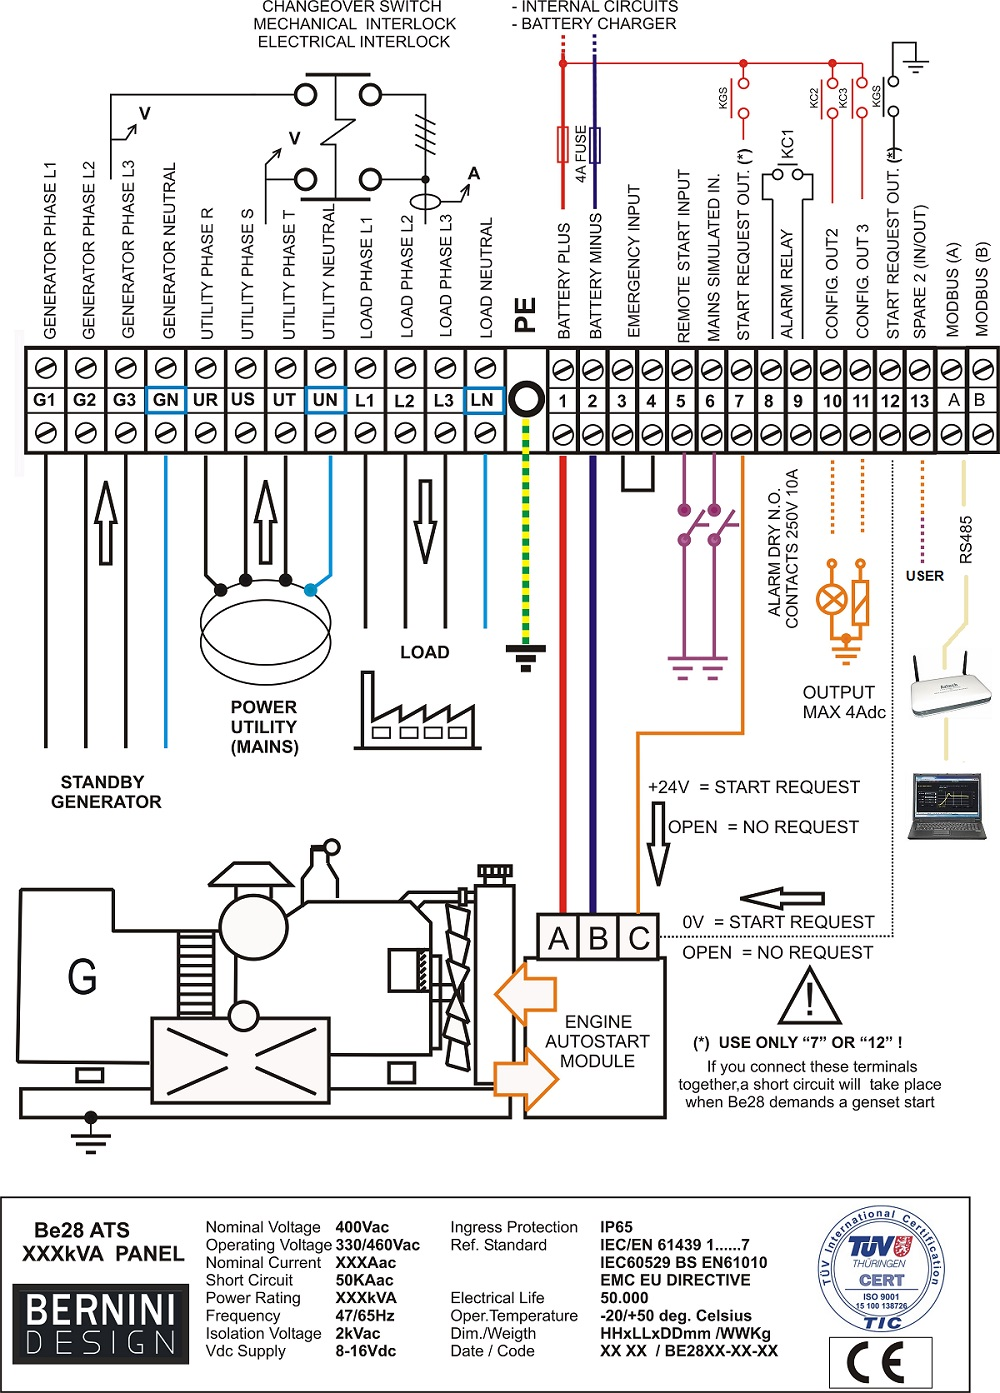 hight resolution of up a generator plug wiring free download wiring diagram schematic cable connector diagram free download wiring diagram schematic